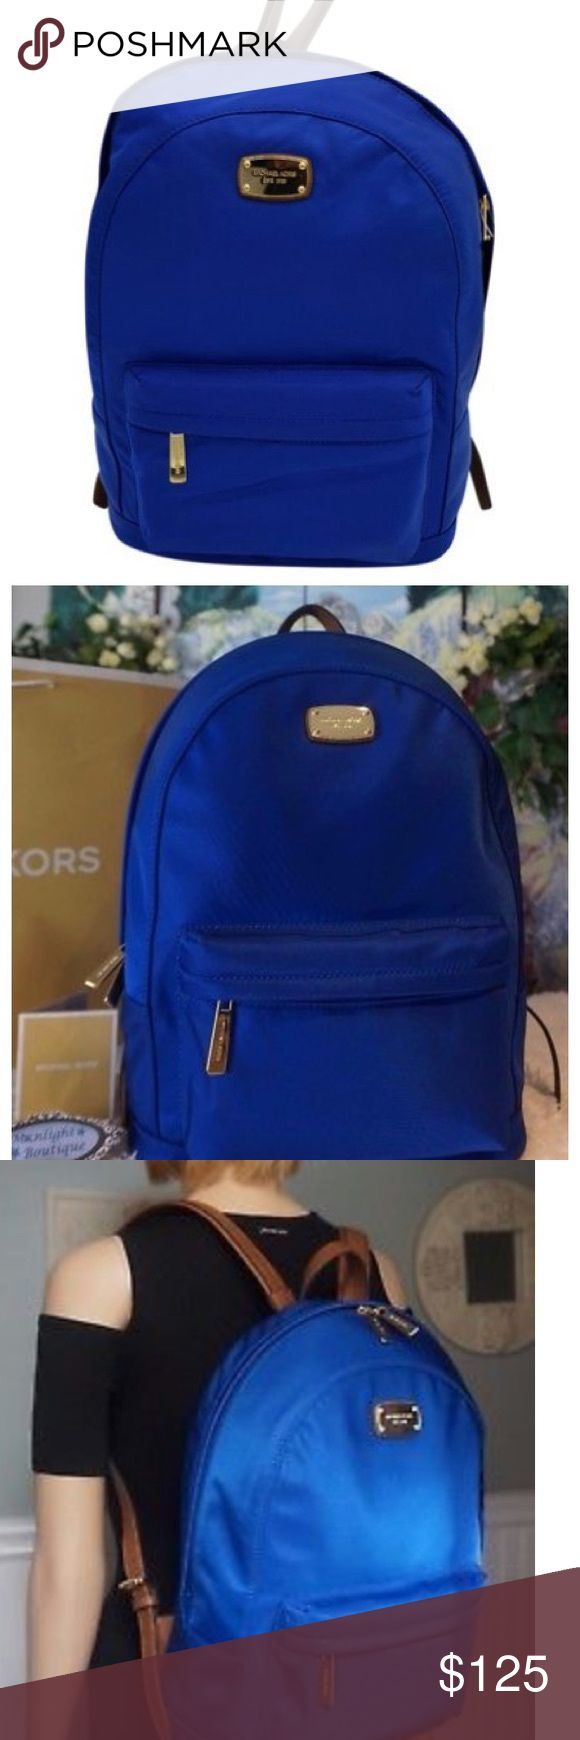 Michael Kors Jet Set Large Backpack In the color electric blue! Only used this backpack for once semester. In nearly perfect condition. No marks. The backpack is currently home while I'm at school. I️ can upload pictures of the backpack this weekend (got these pictures online to show what the bag looks like) Michael Kors Bags Backpacks